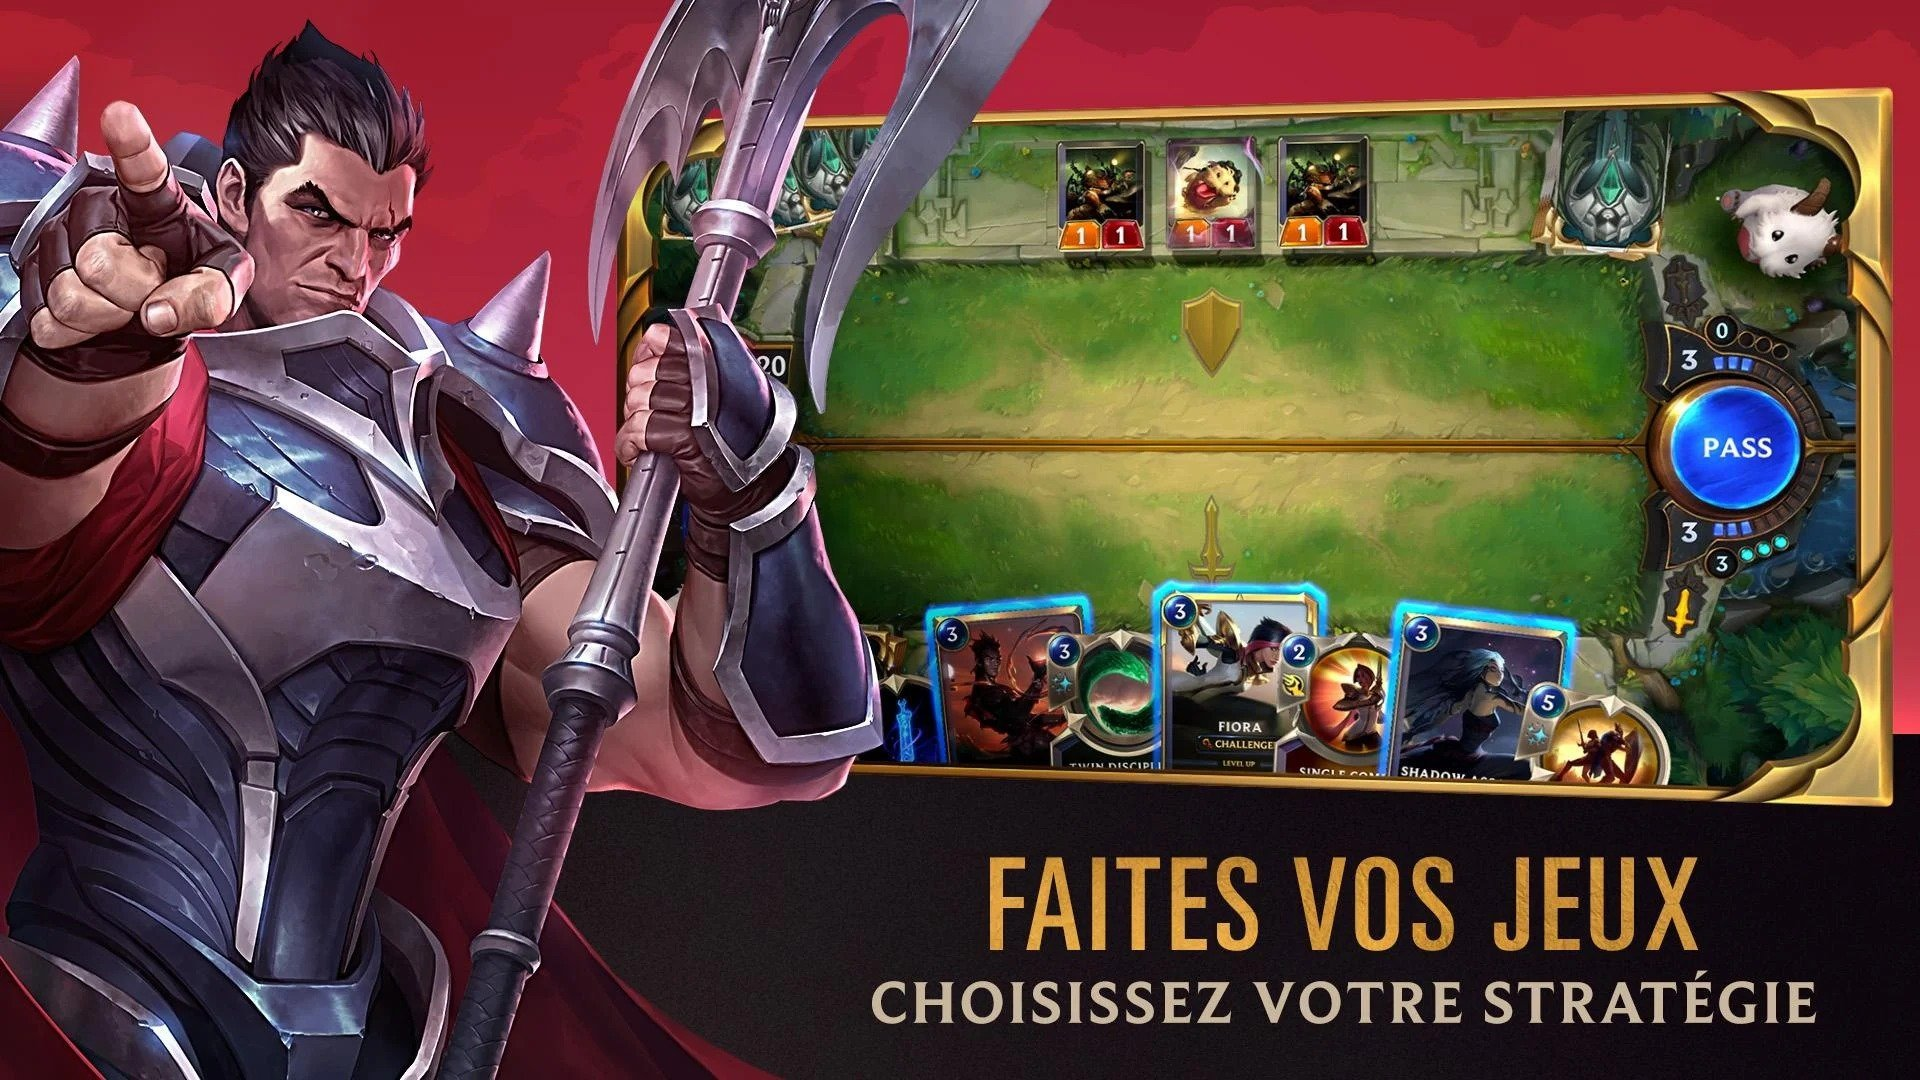 Legends of Runeterra, le jeu de cartes League of Legends, est dévoilé